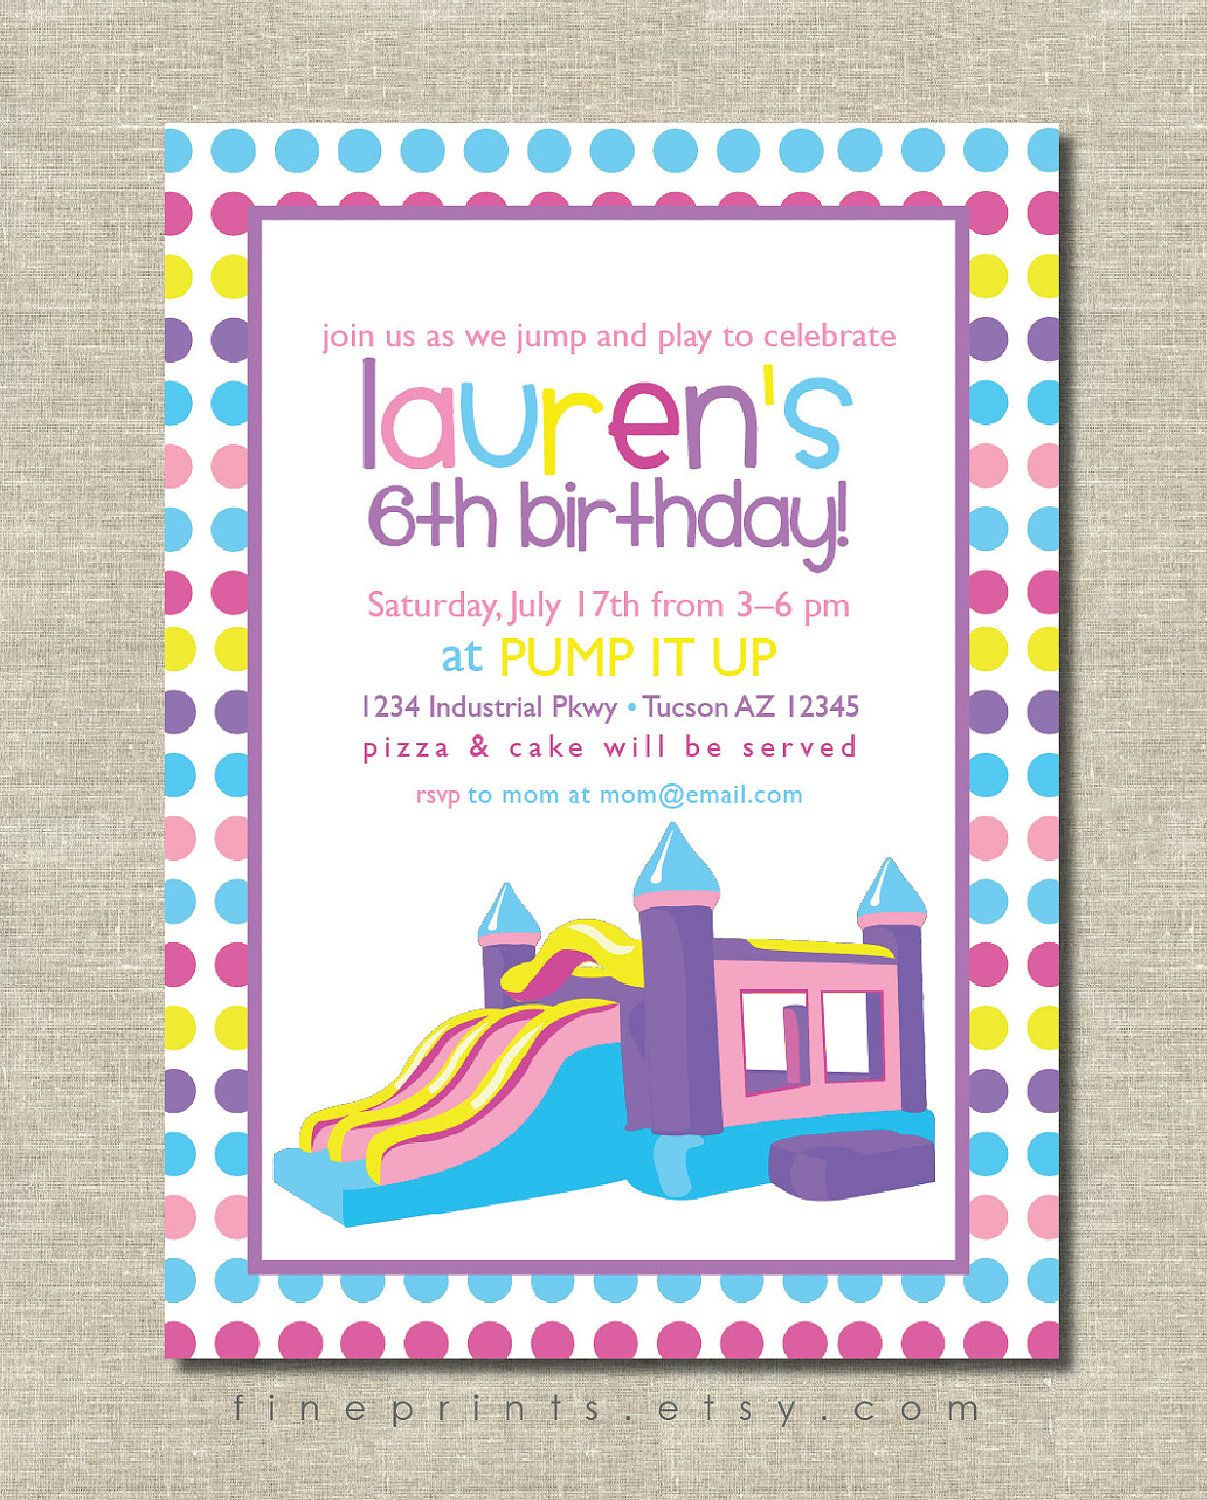 bounce house jumping castle birthday party invitation birthdays bounce house jumping castle birthday party invitation 15 00 via